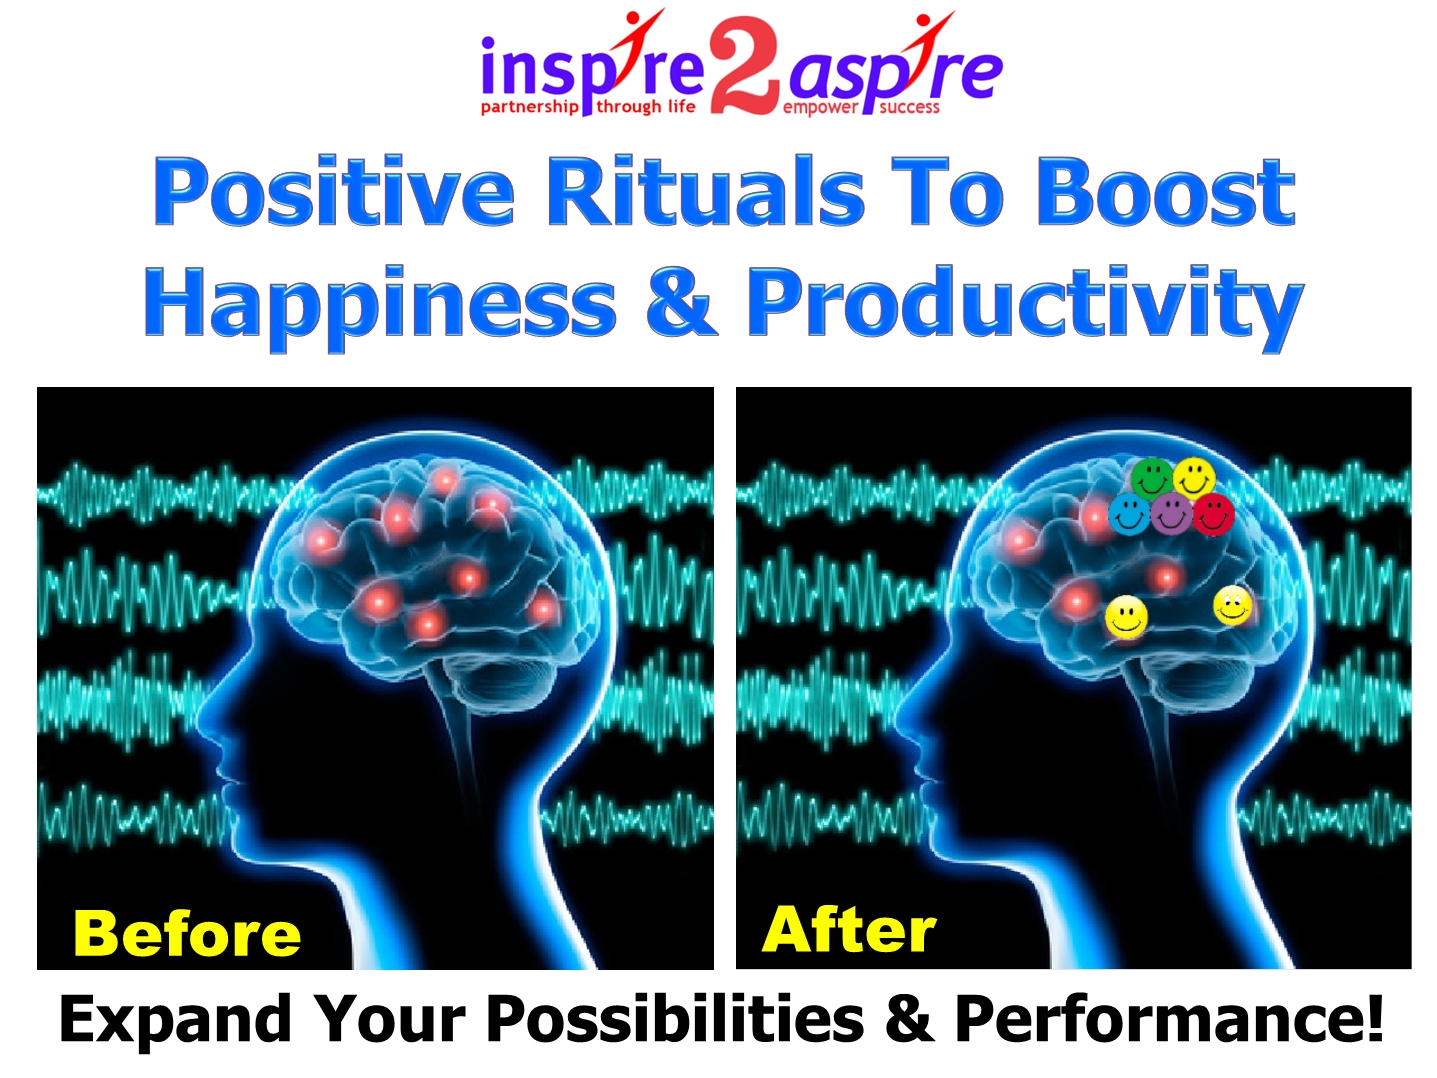 Positive Rituals To Boost Happiness